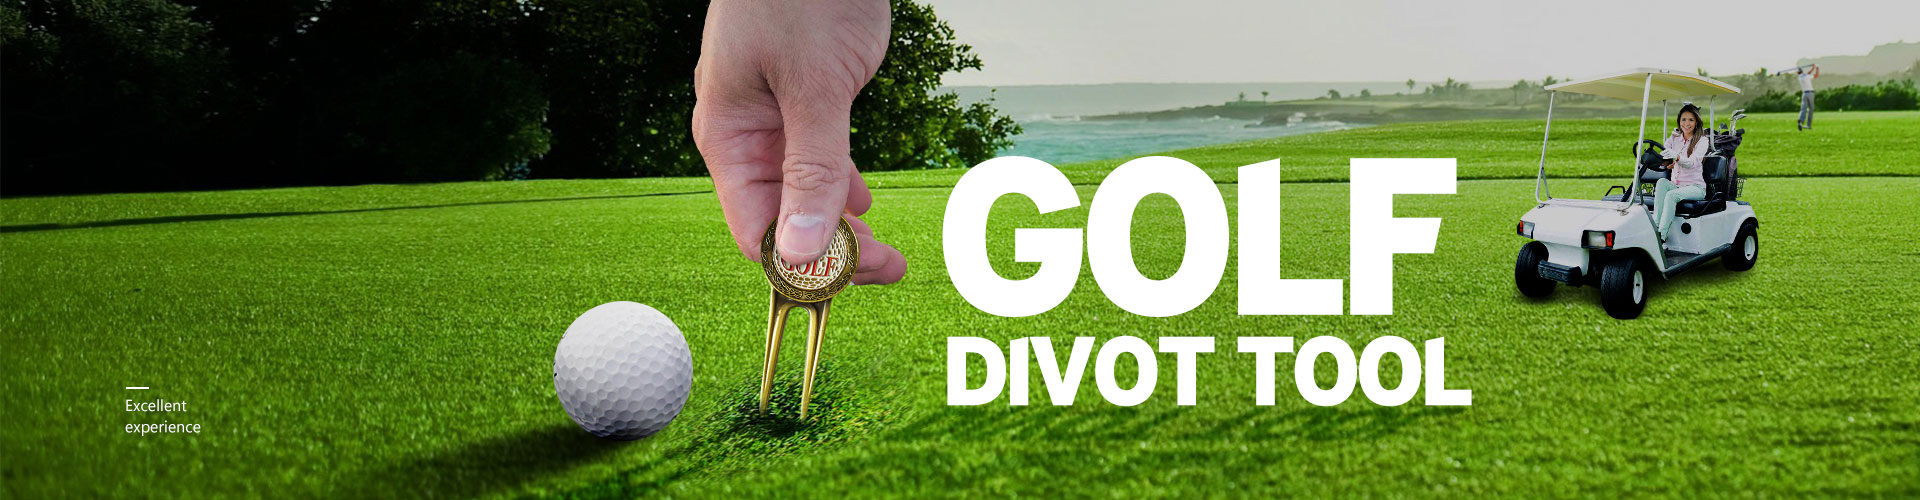 golf divot tools ads (1)